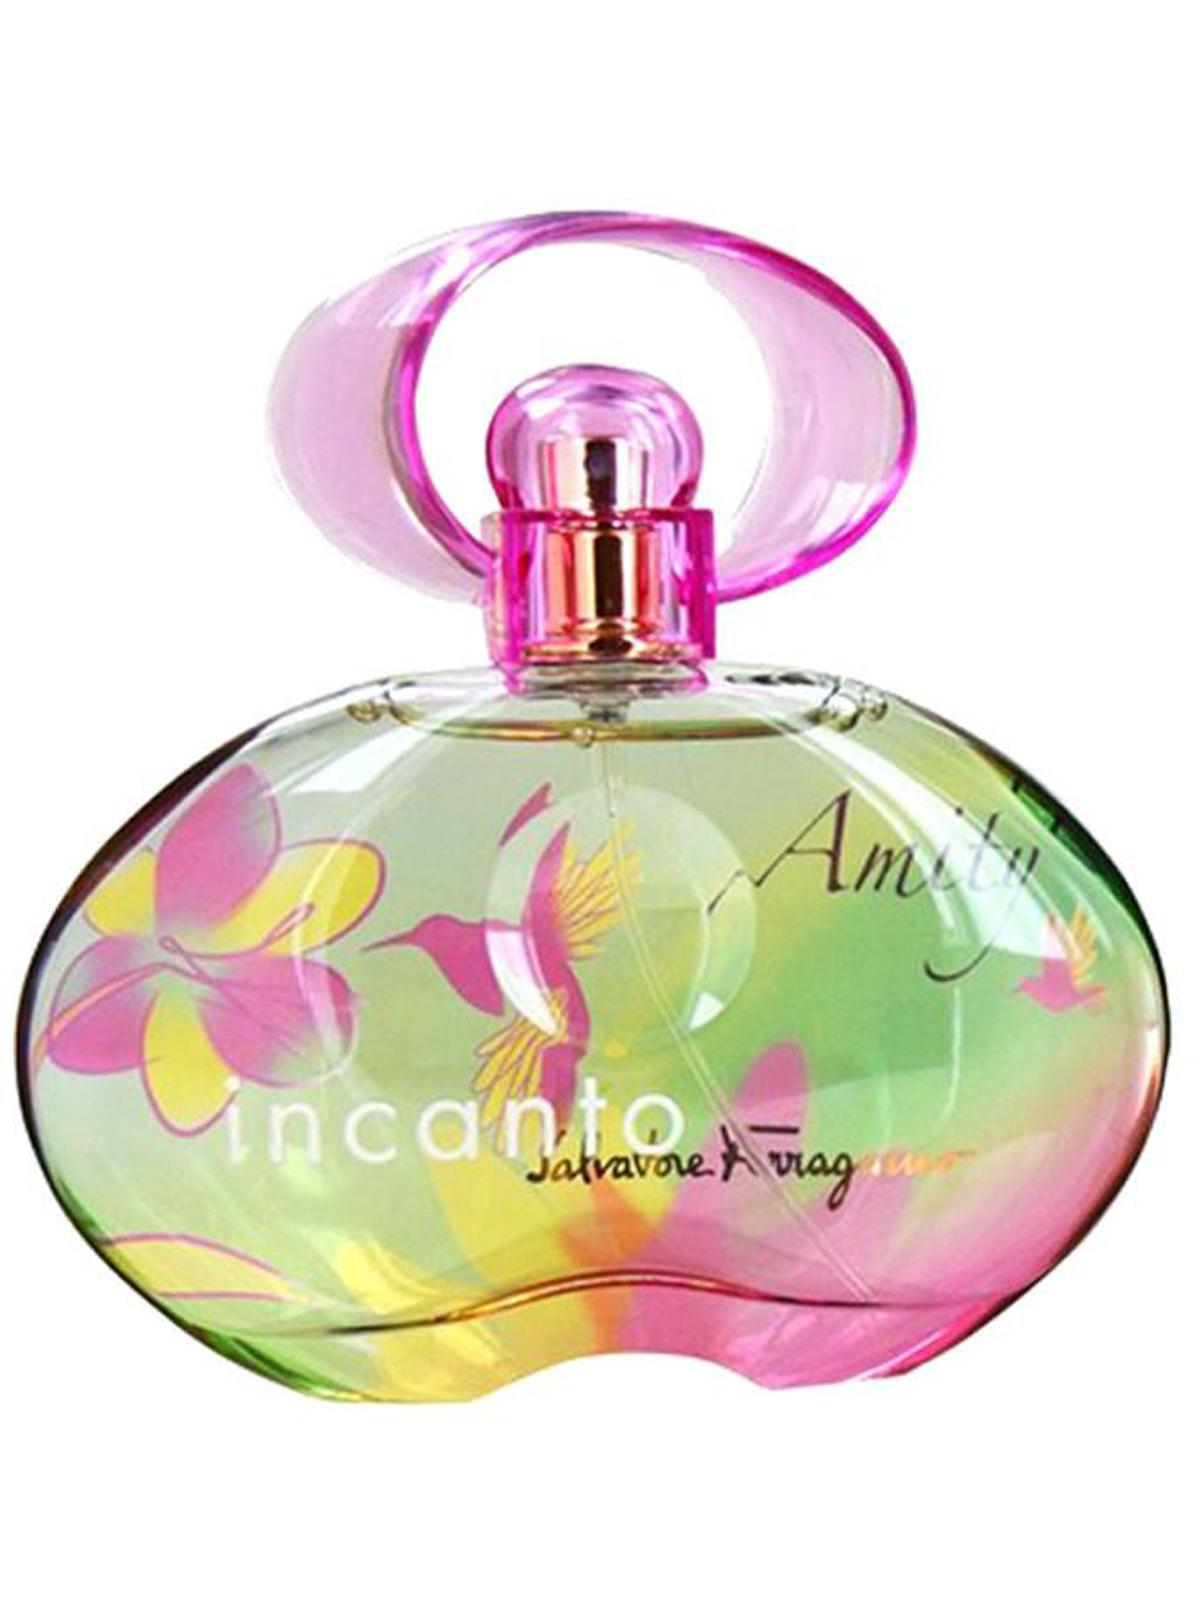 S Ferragamo Incanto Amity for Women Eau De Toilette 30ML